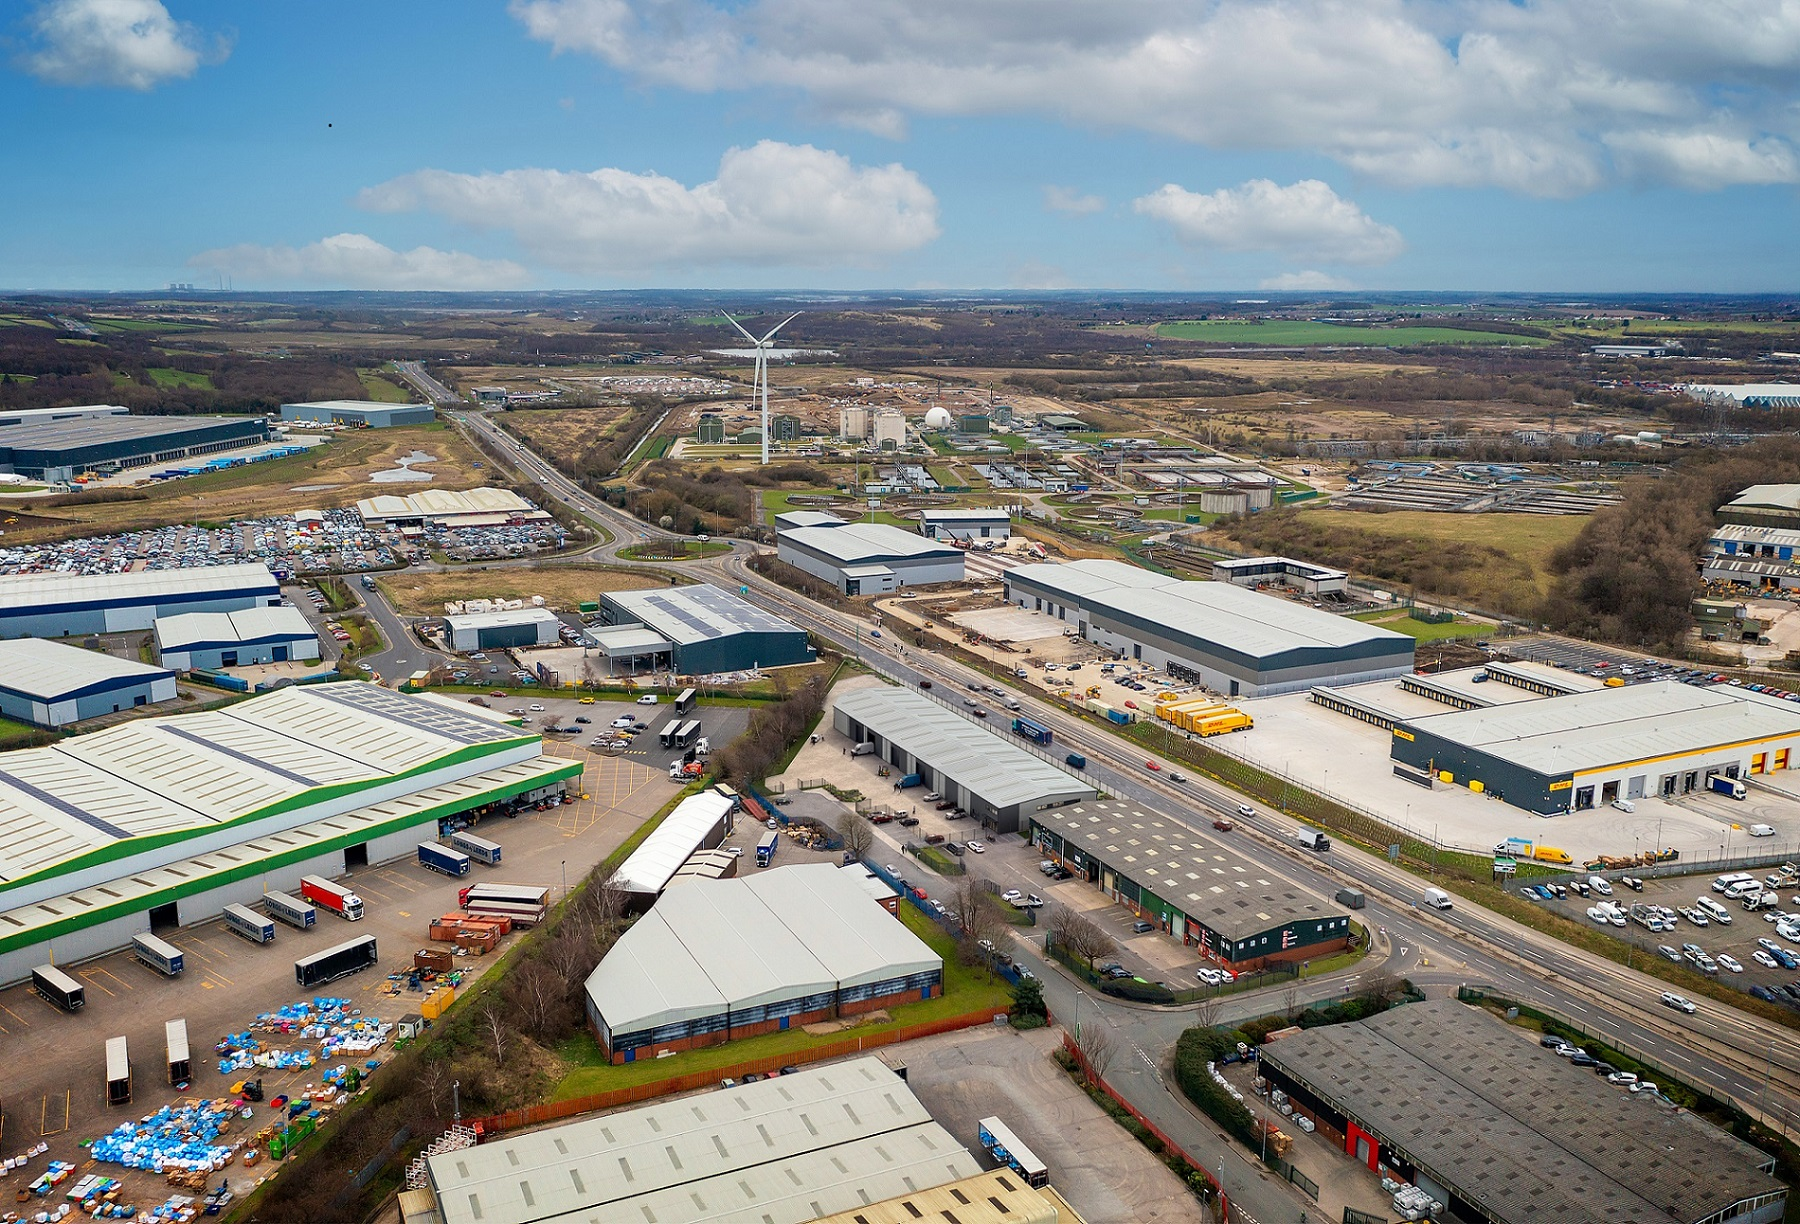 Planning permission approved for extensive warehouse redevelopment at Cross Green, Leeds